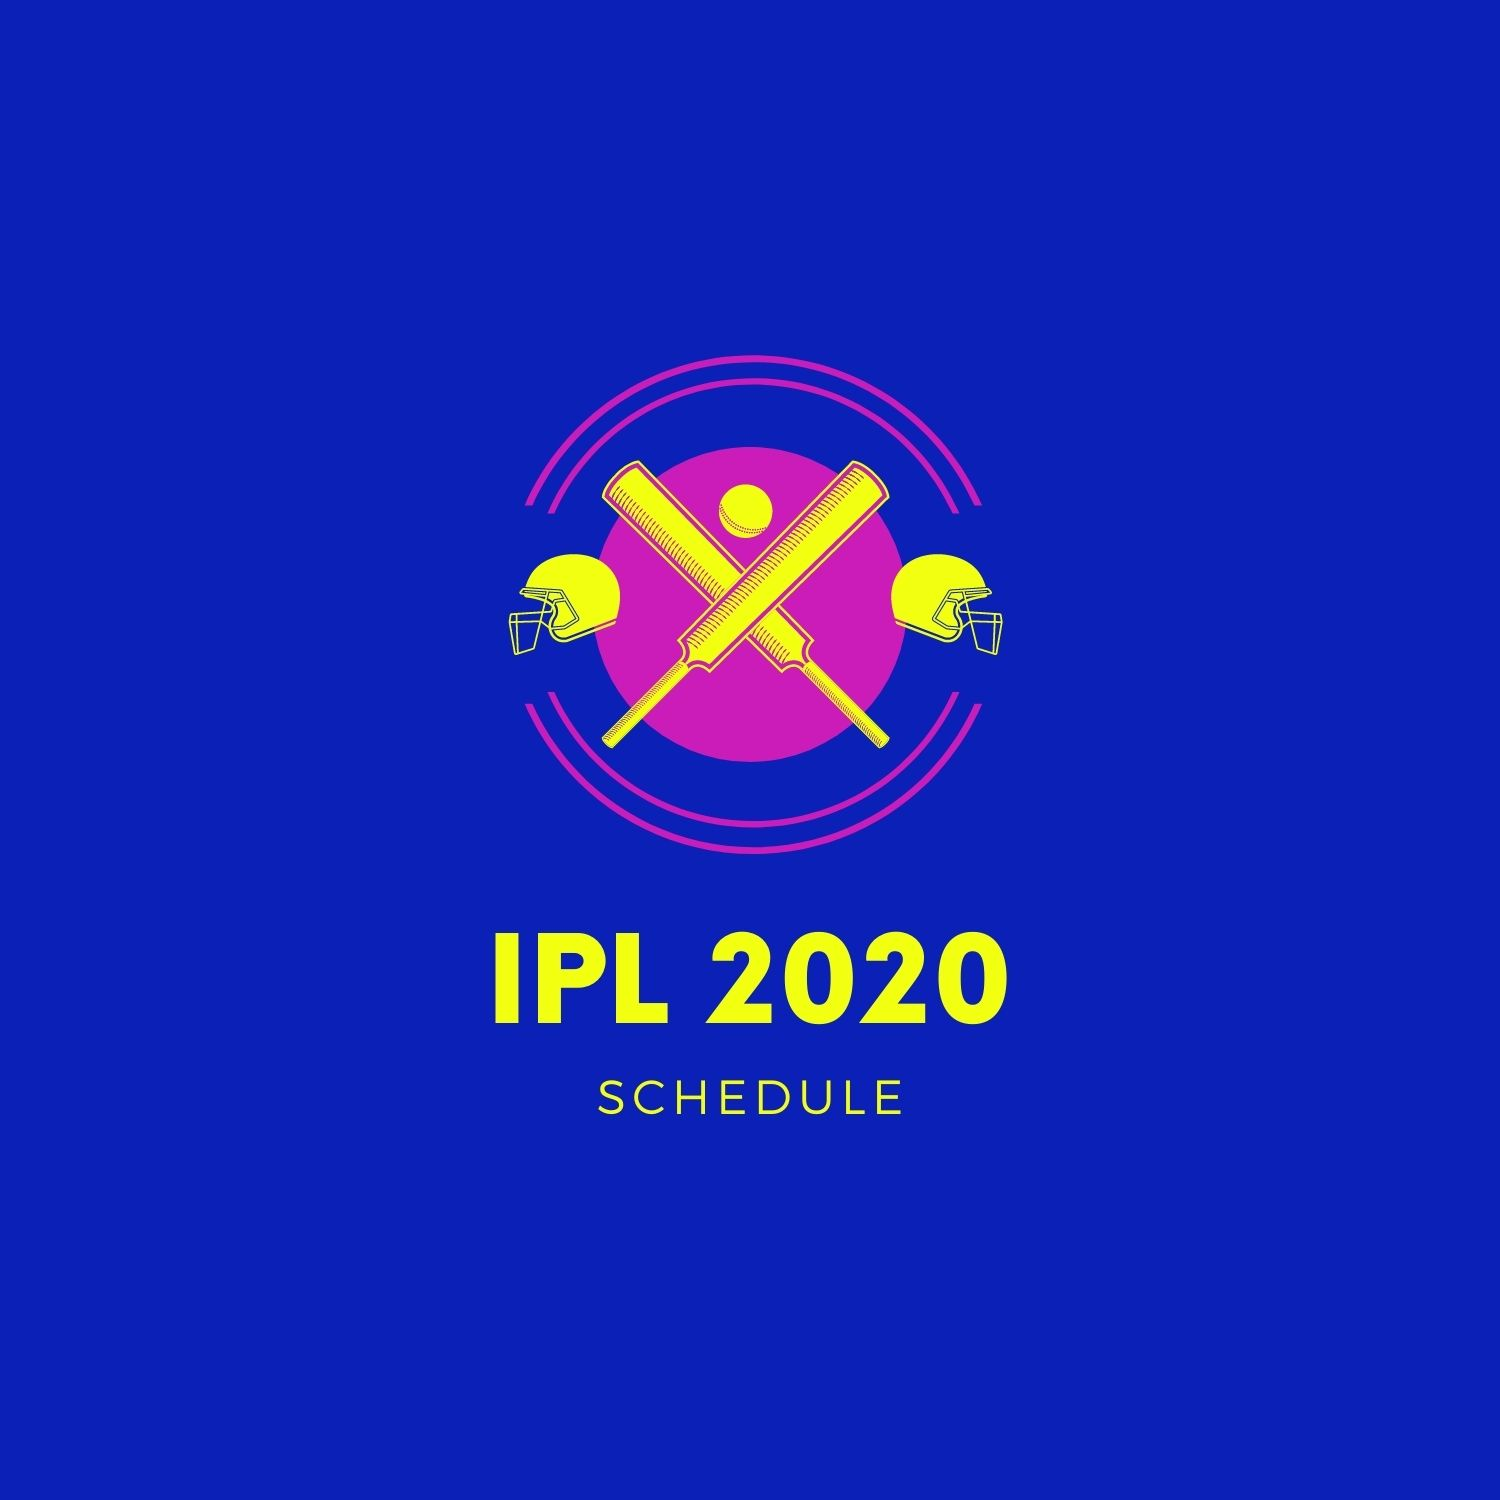 Vivo Ipl 2020 New Schedule Update Venue And Starting Time From 19th September To 10th November 2020 Invasion 24